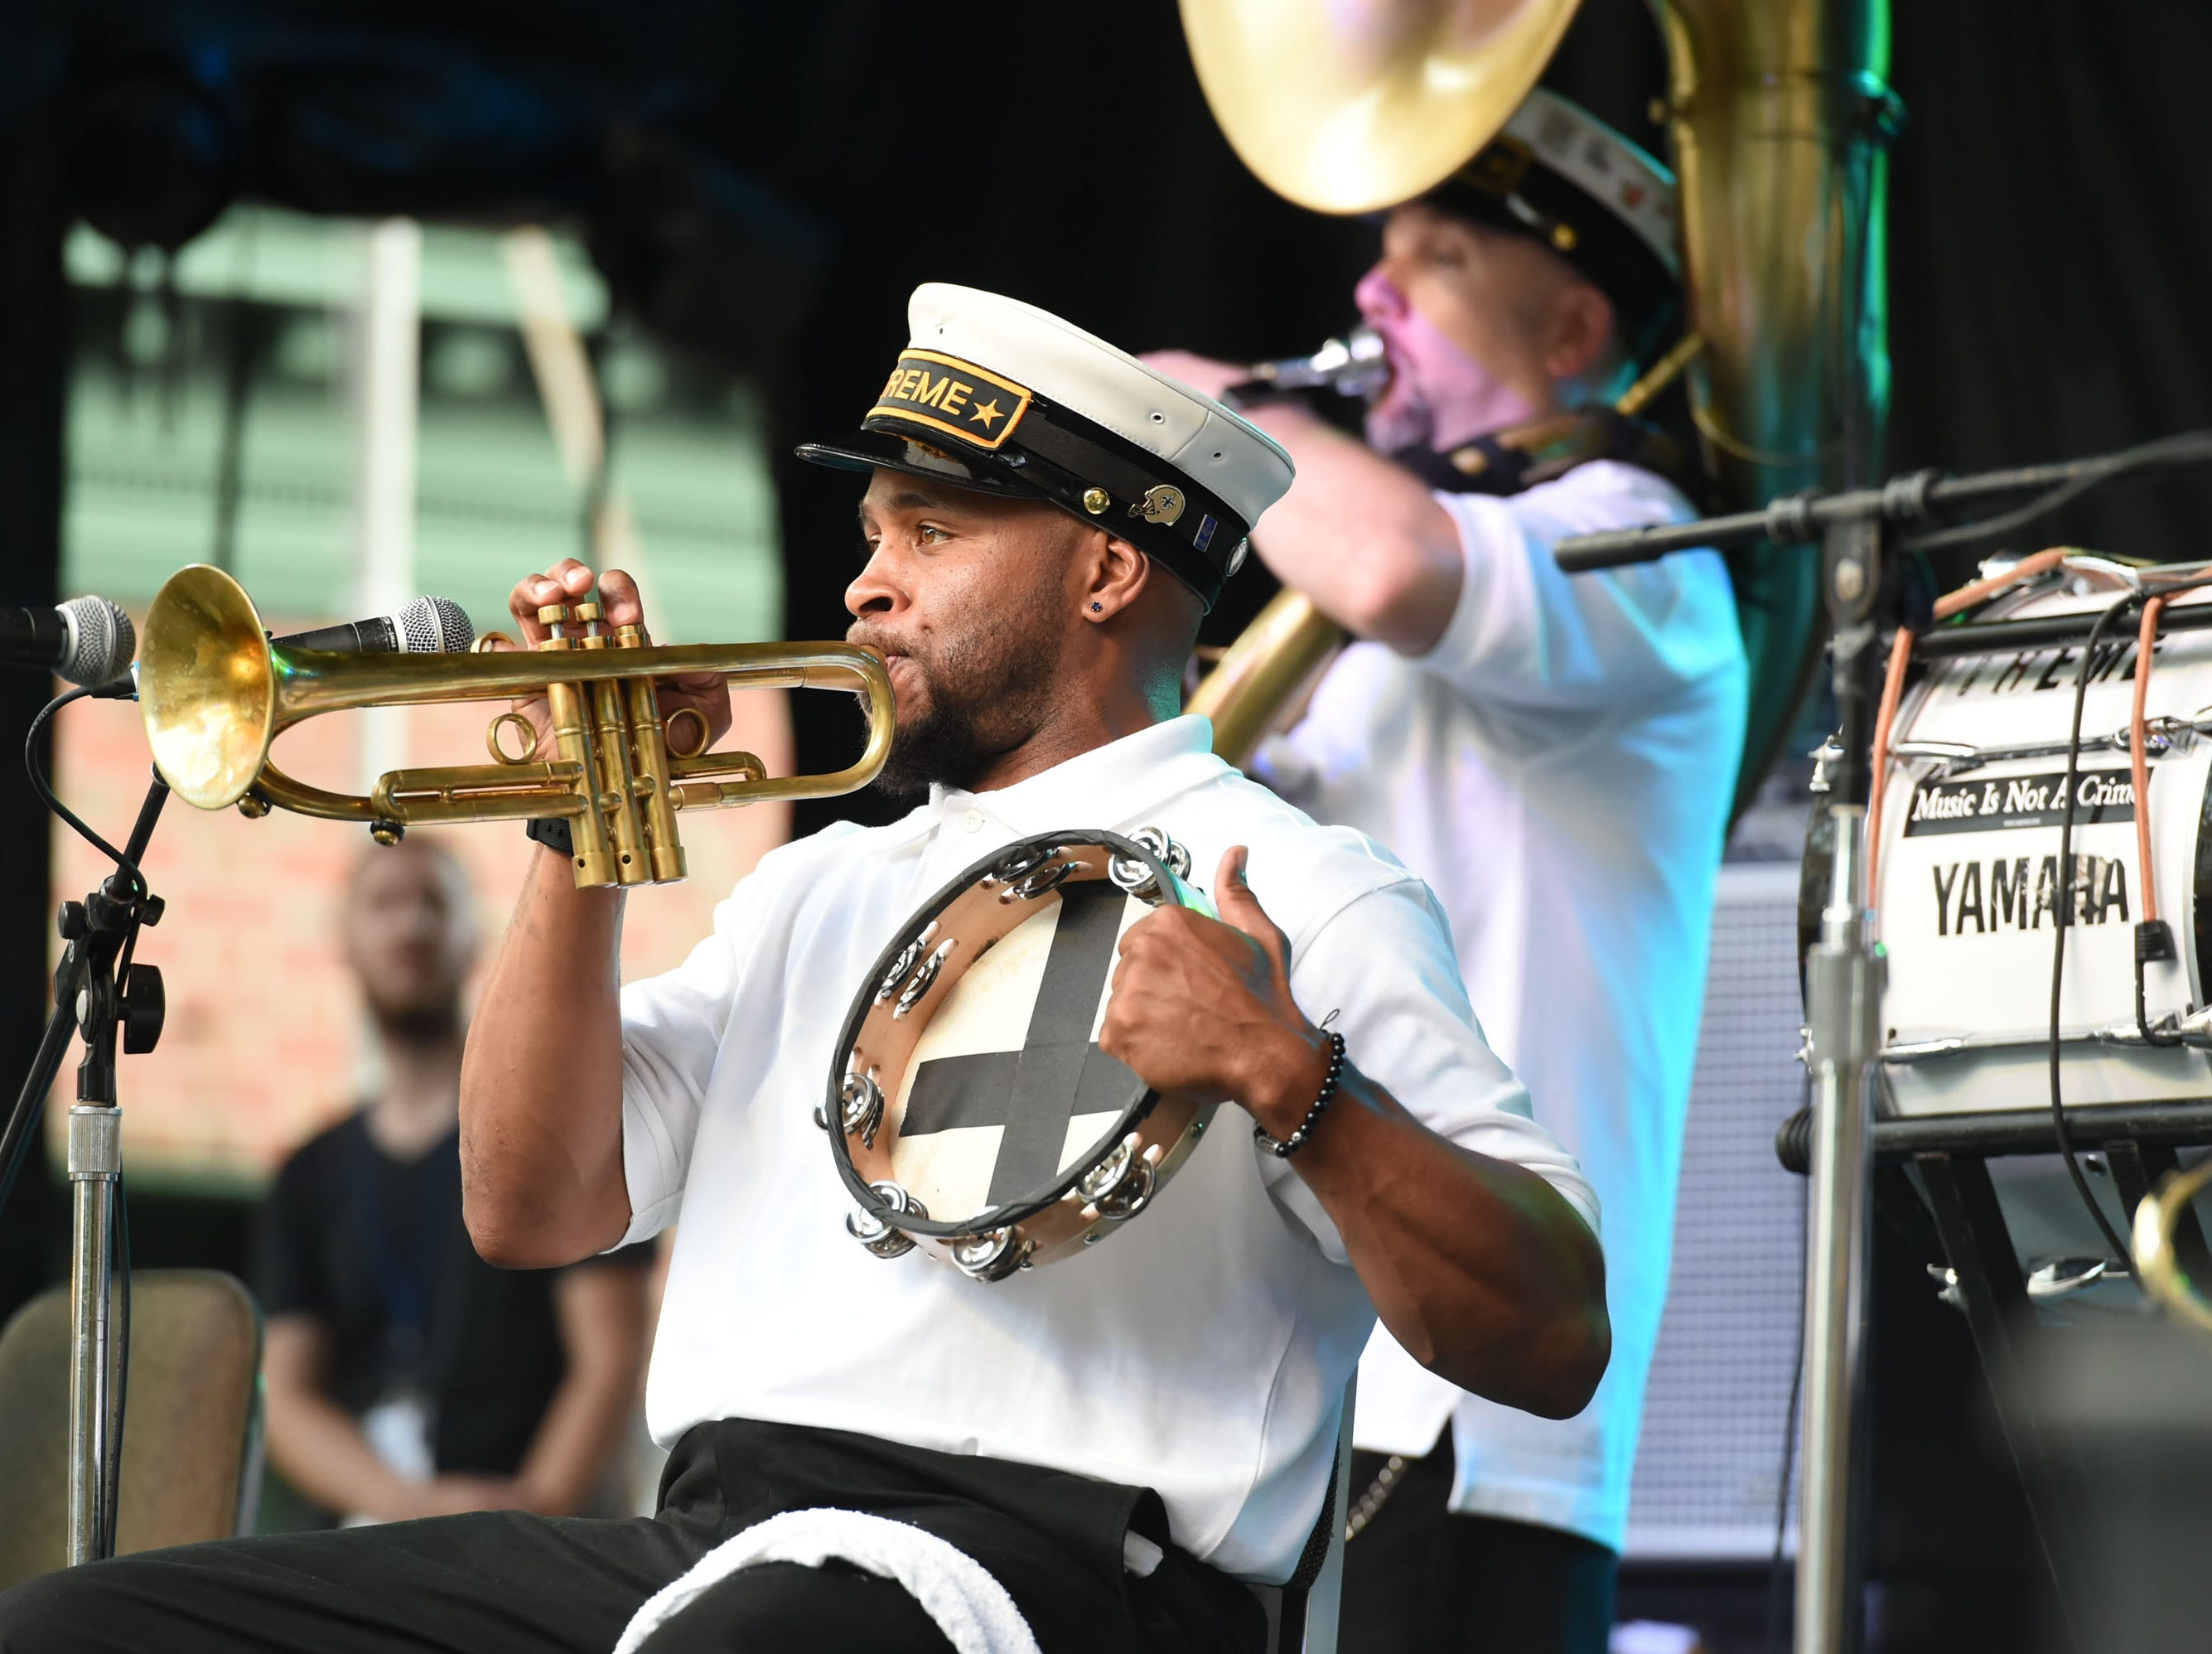 The Treme Brass Band kicked off the 78th National Folk Festival on Friday, Sept. 7, 2018.